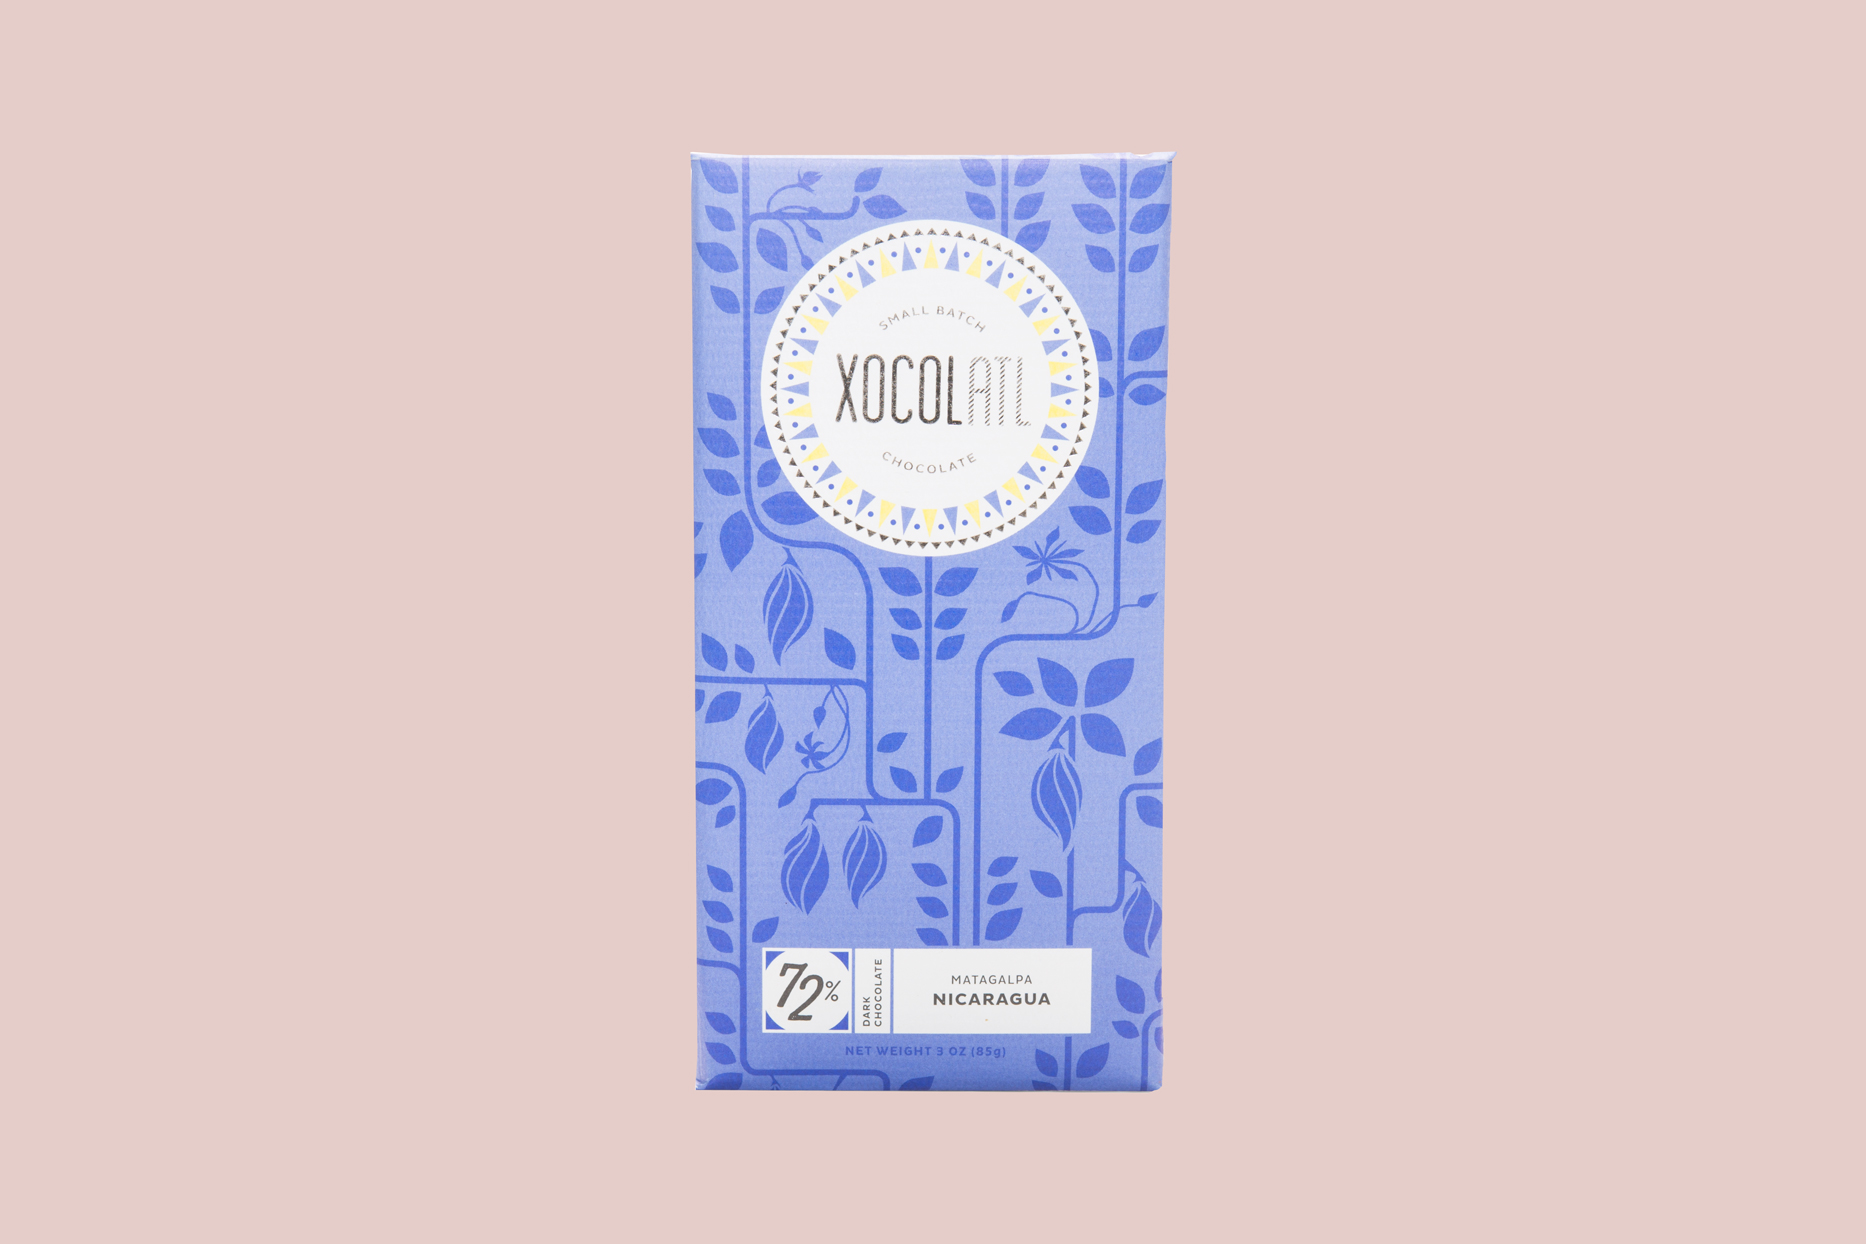 xocolatl chocolate bar